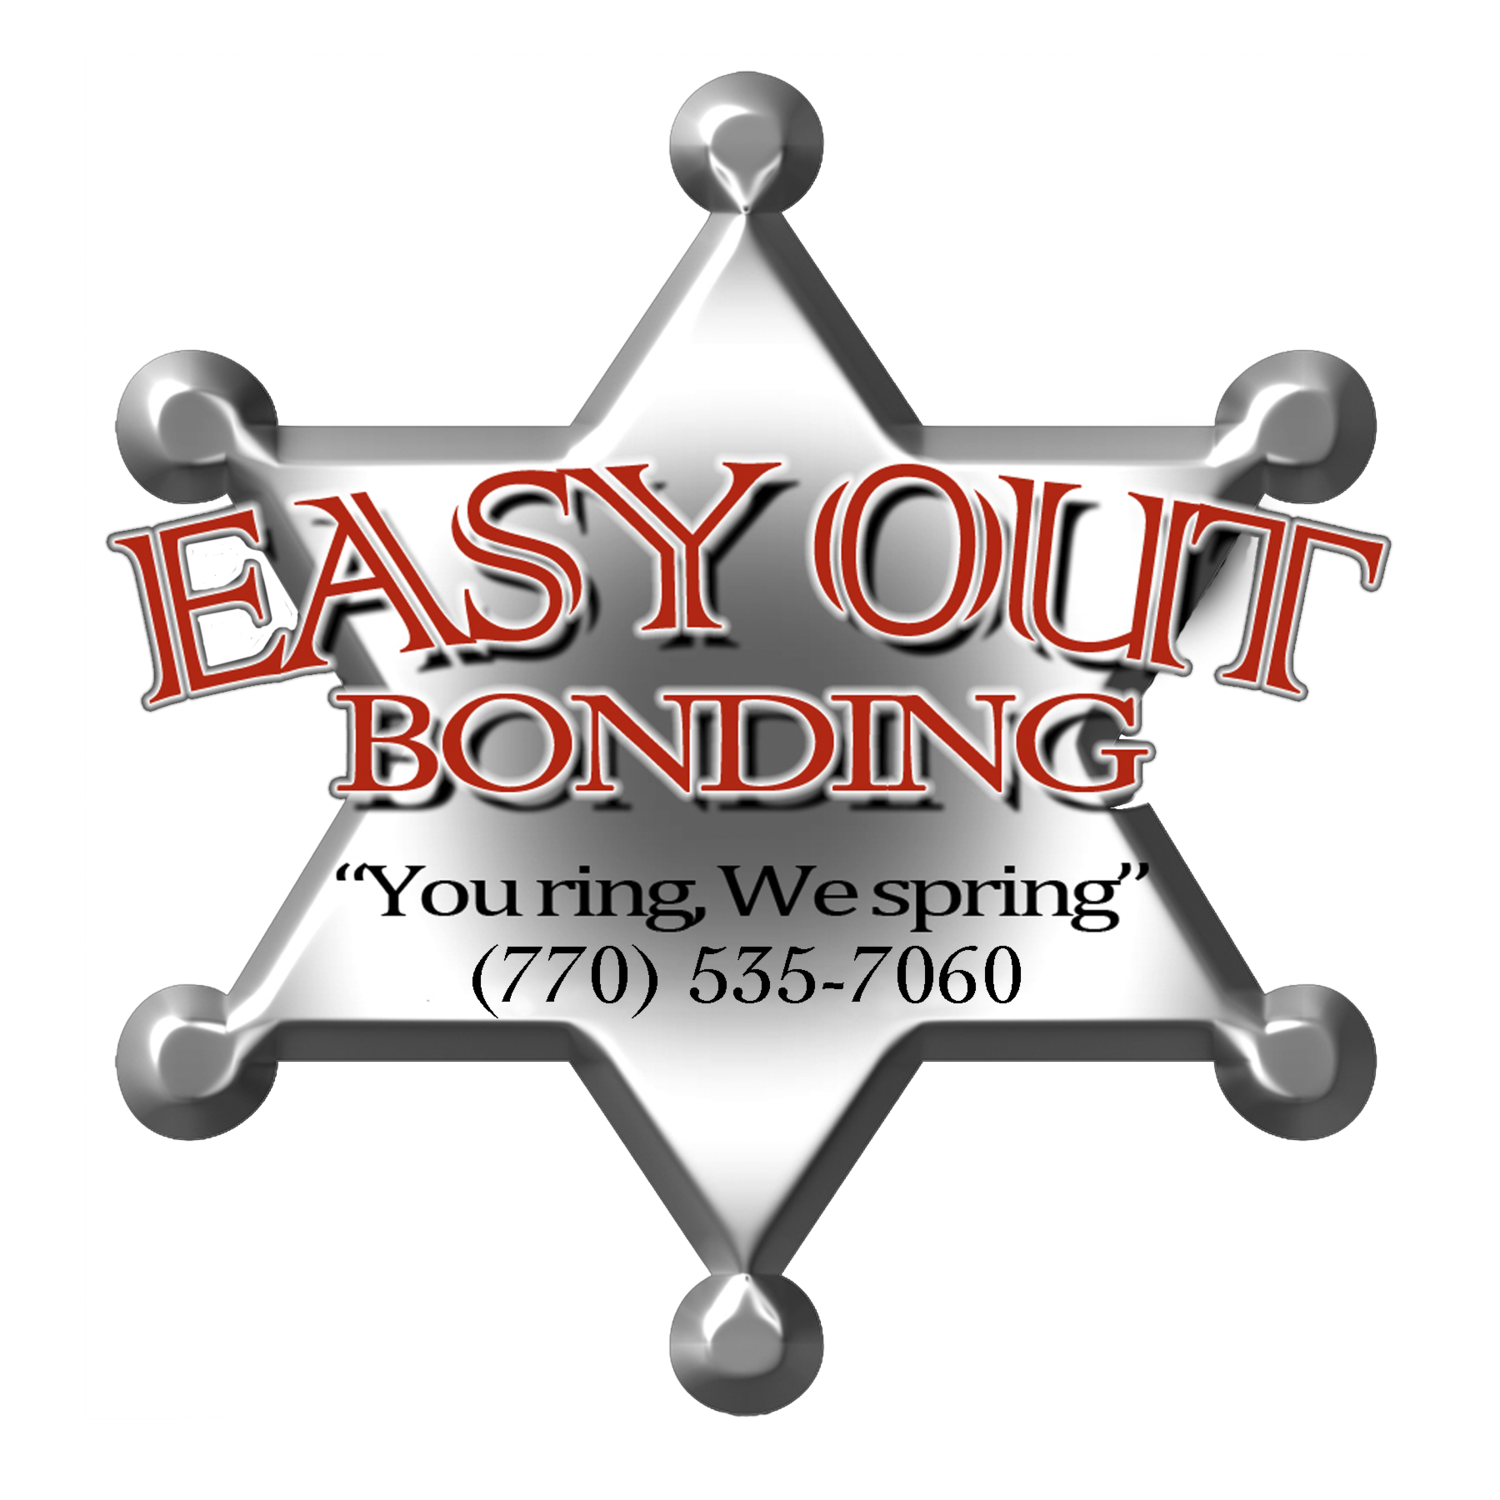 Easy Out Bonding Company, Inc.